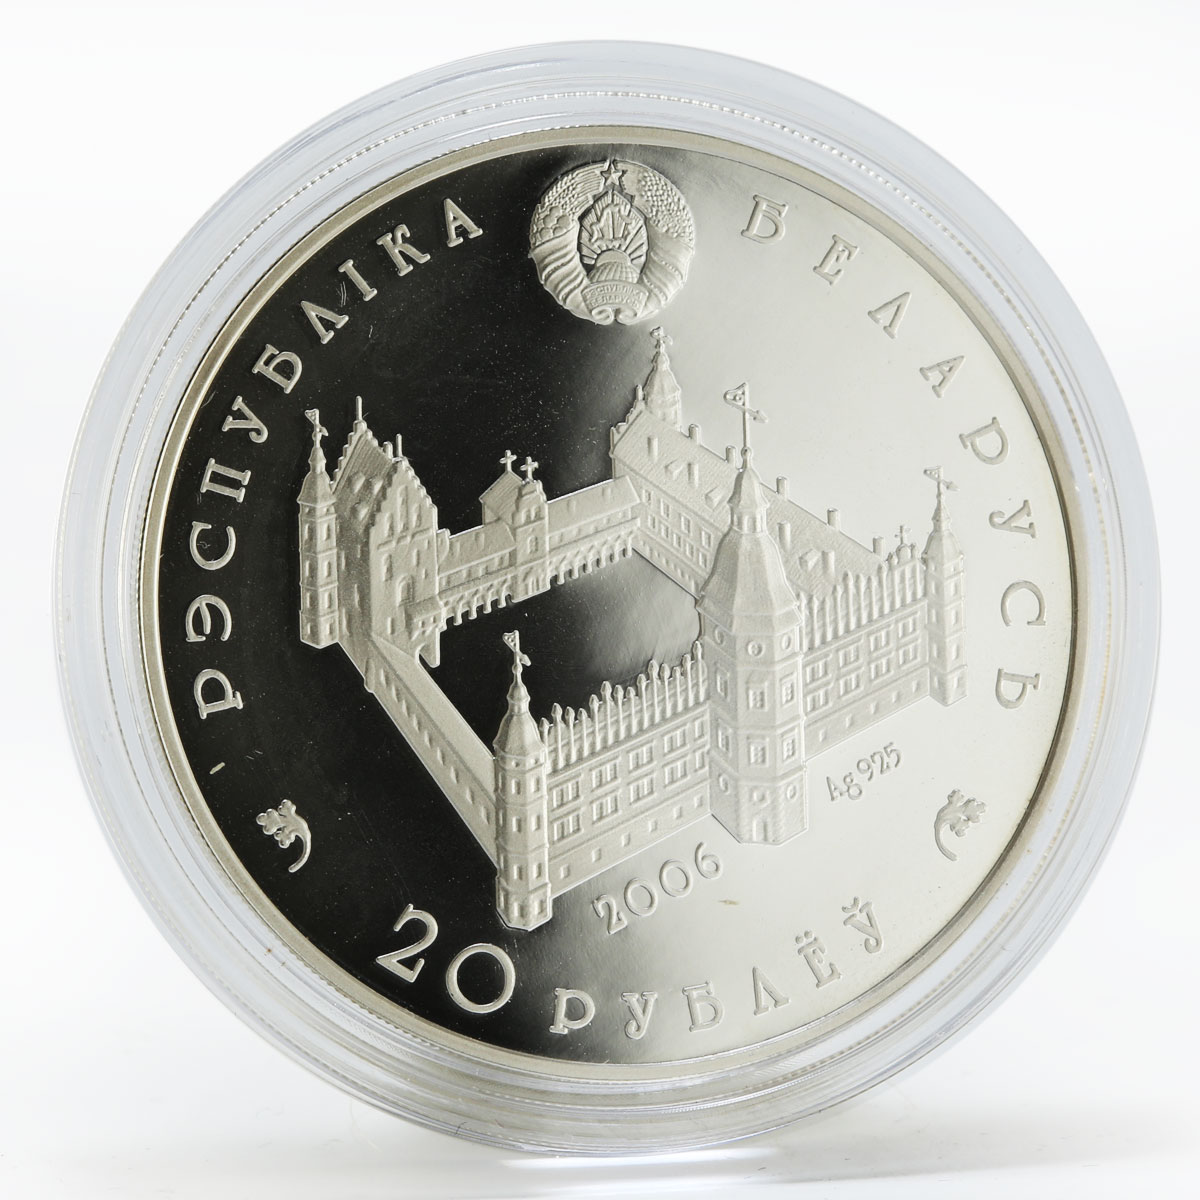 Belarus 20 rubles 600th Sophia of Galshany proof silver coin 2006